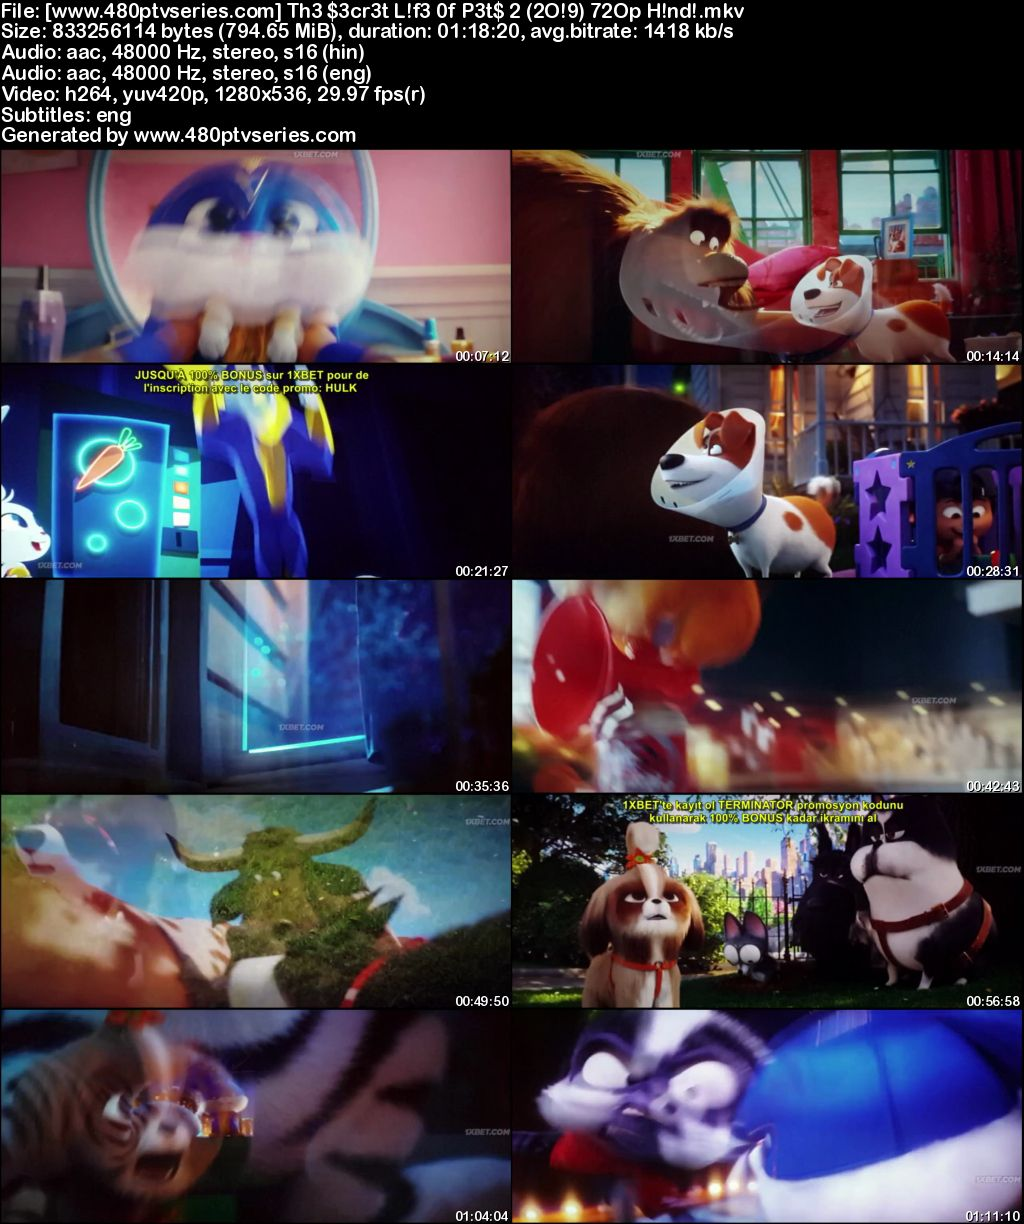 Watch Online Free The Secret Life of Pets 2 (2019) Full Hindi Dual Audio Movie Download 480p 720p HD